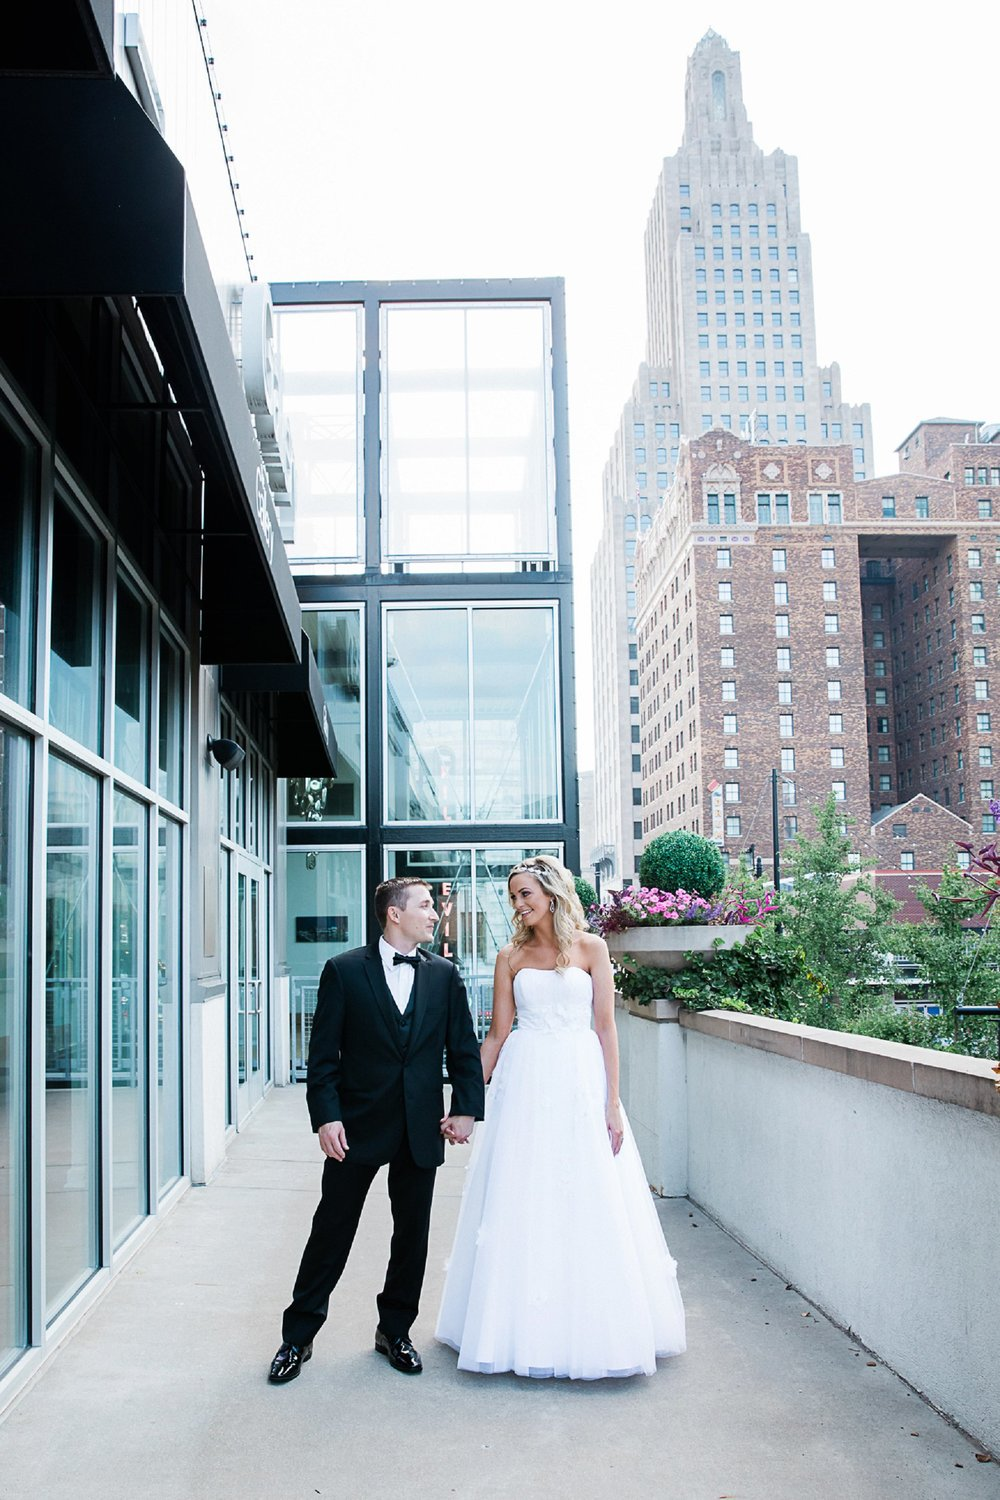 Bride and Groom Skyline Photography | Best Kansas Wedding Photographer Merry Ohler